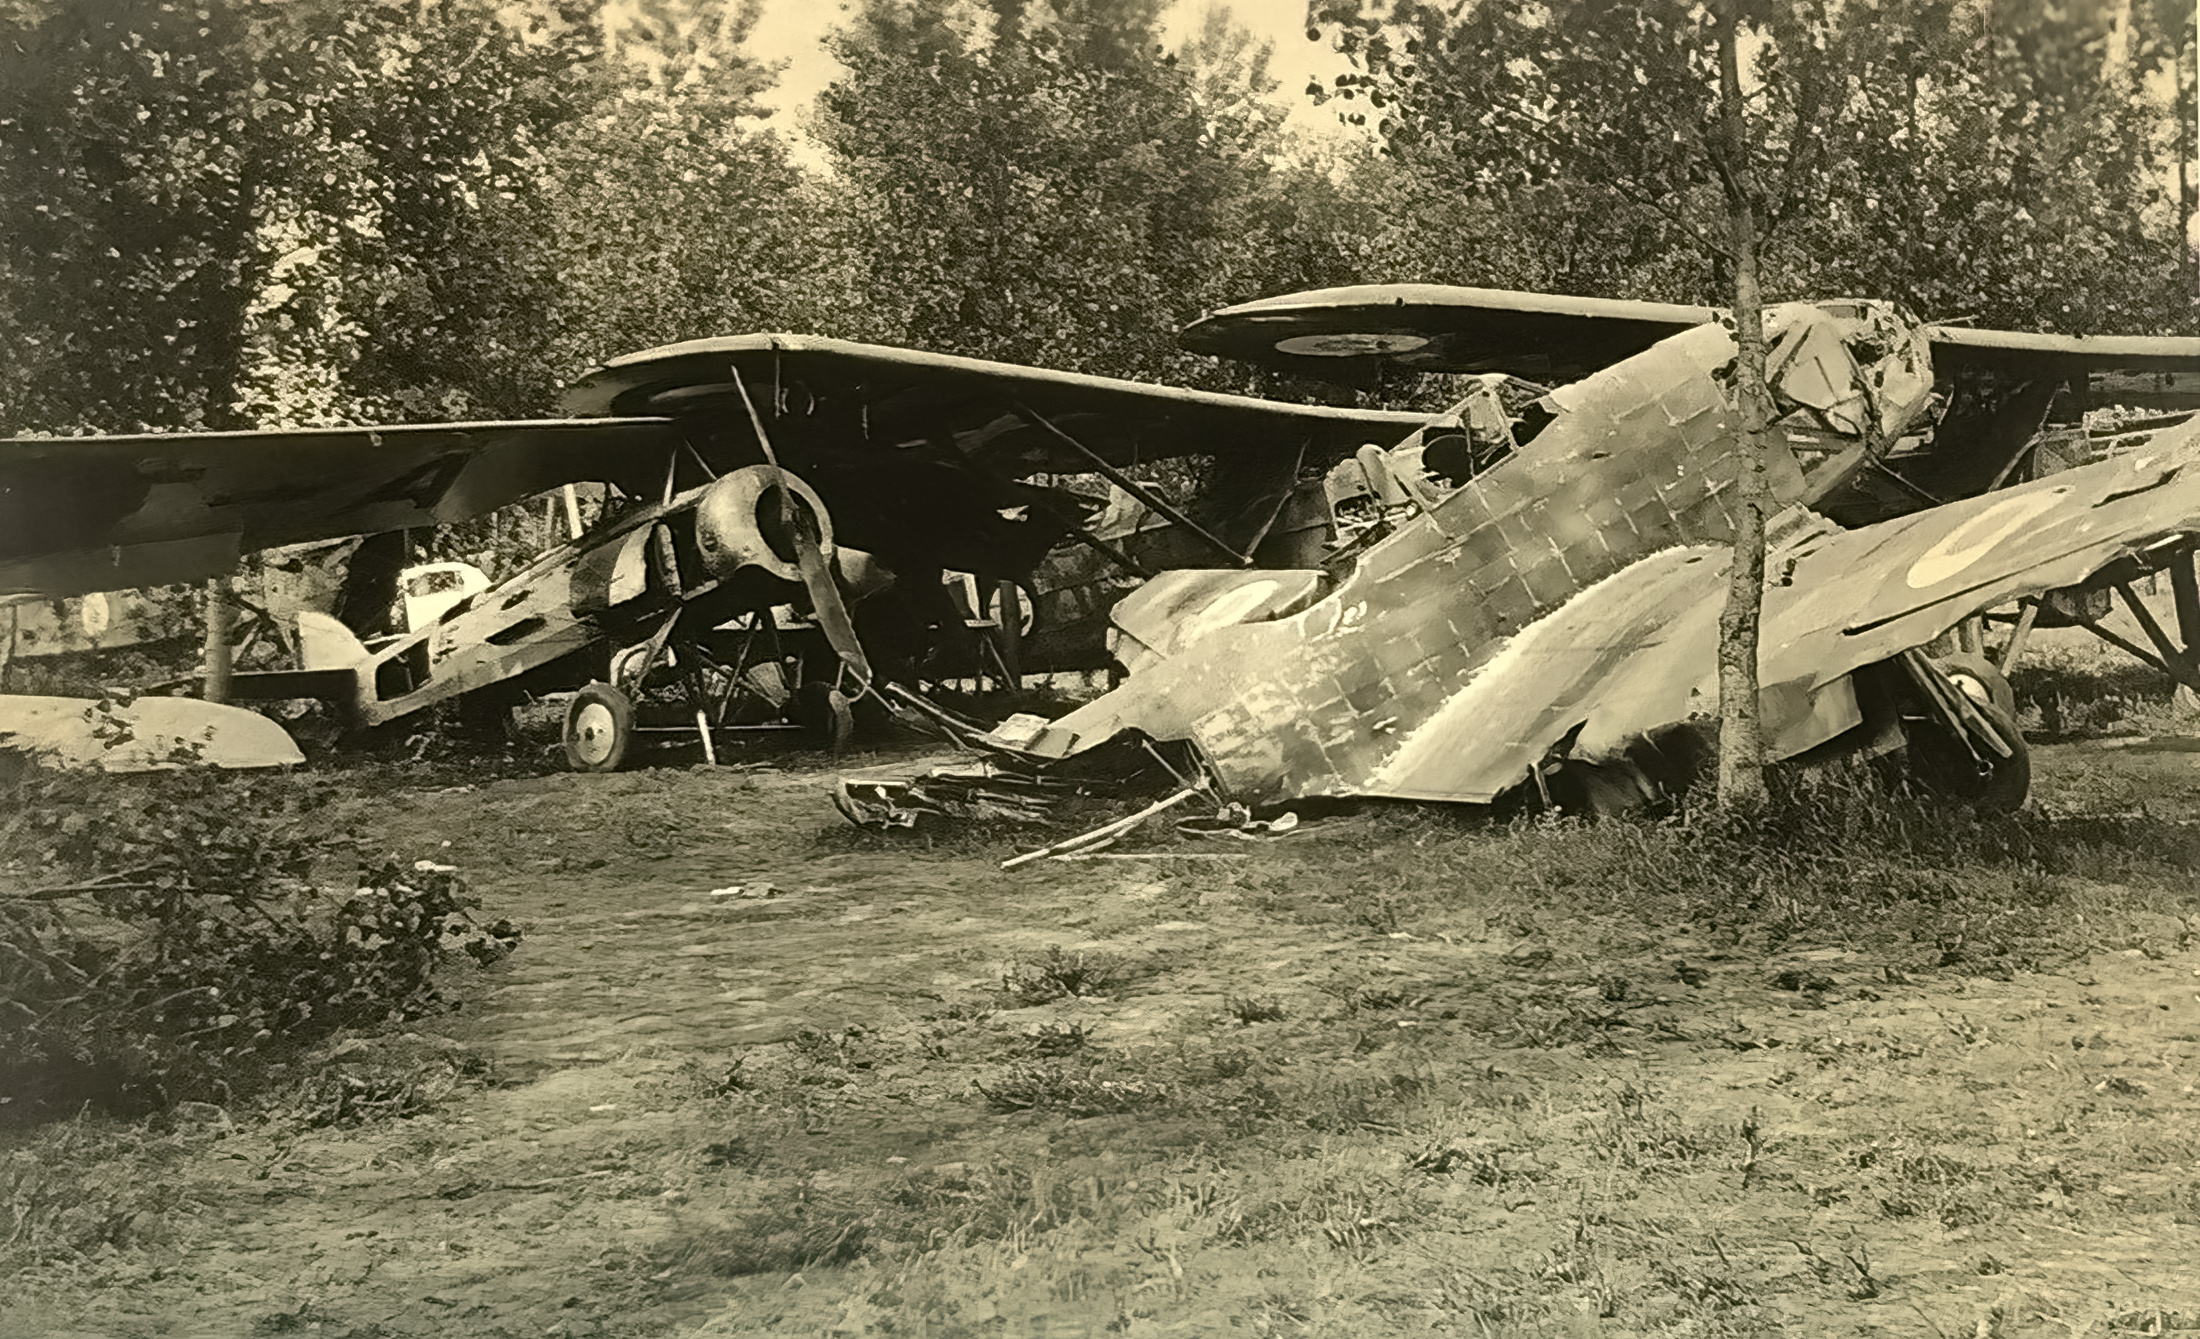 French Airforce Potez 63.11 wrecked fuselage at Charleville France 1940 ebay 01